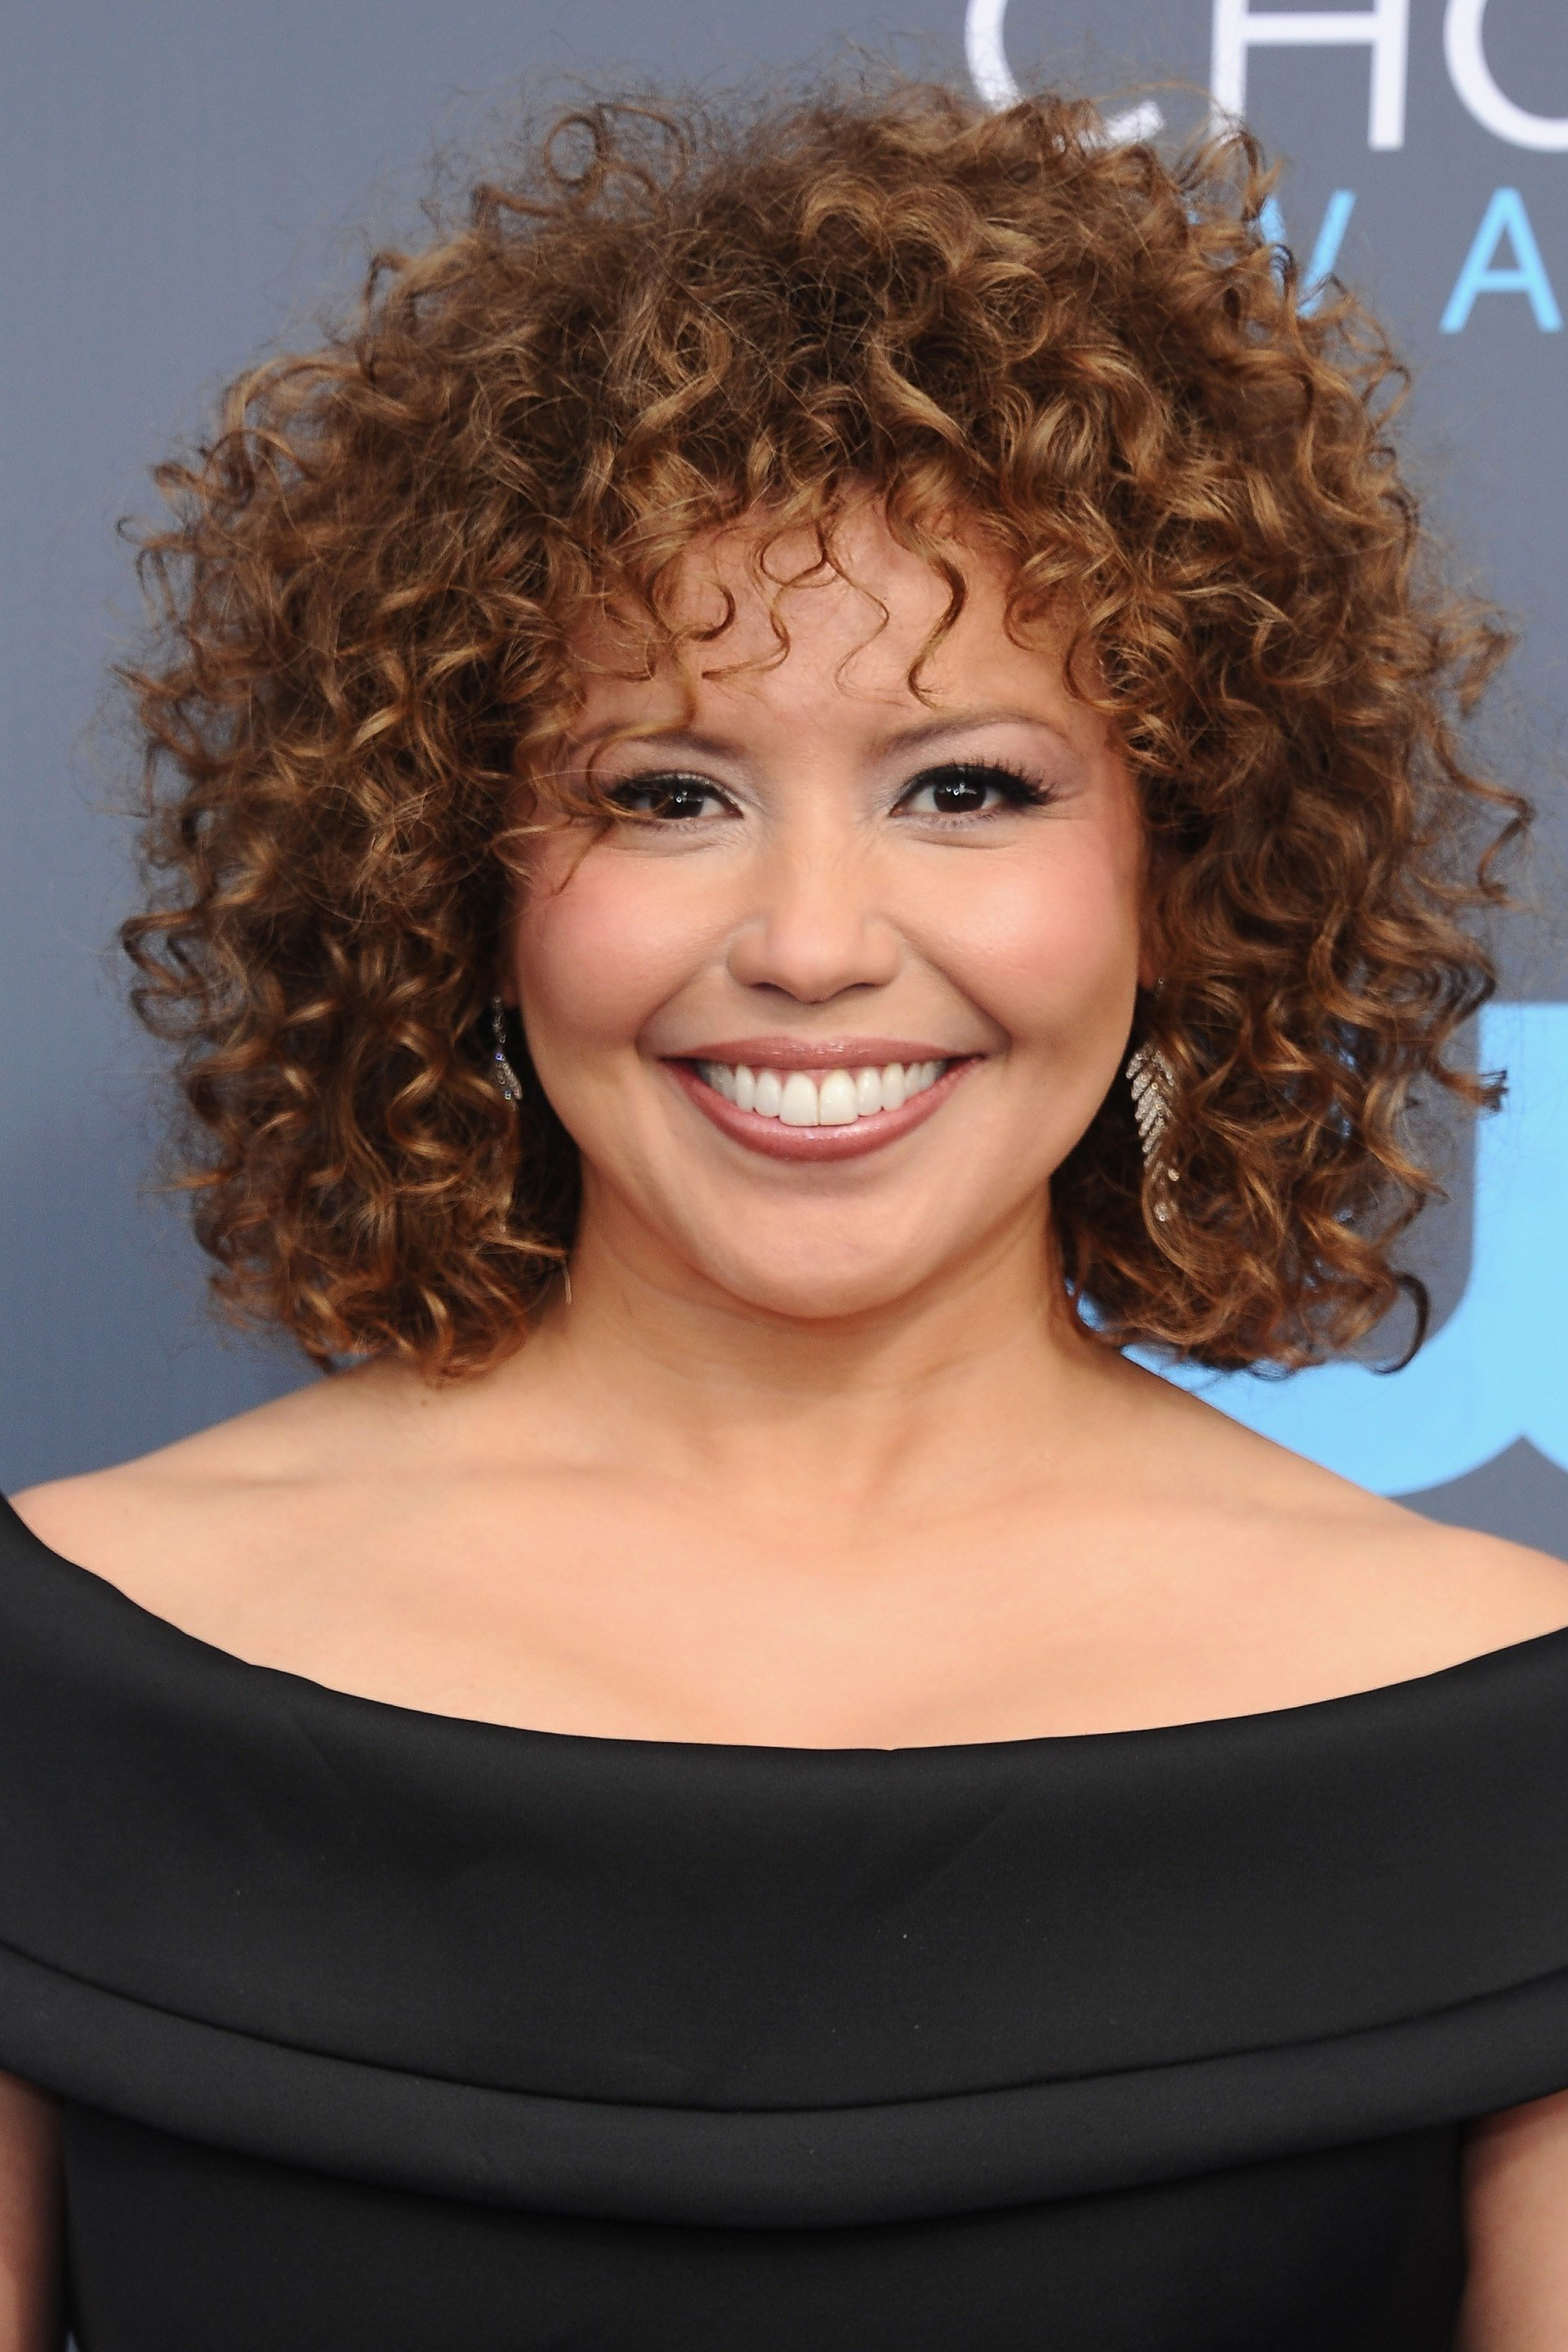 The Best 19 Celebrity Short Curly Hair Ideas Short Haircuts And Pictures